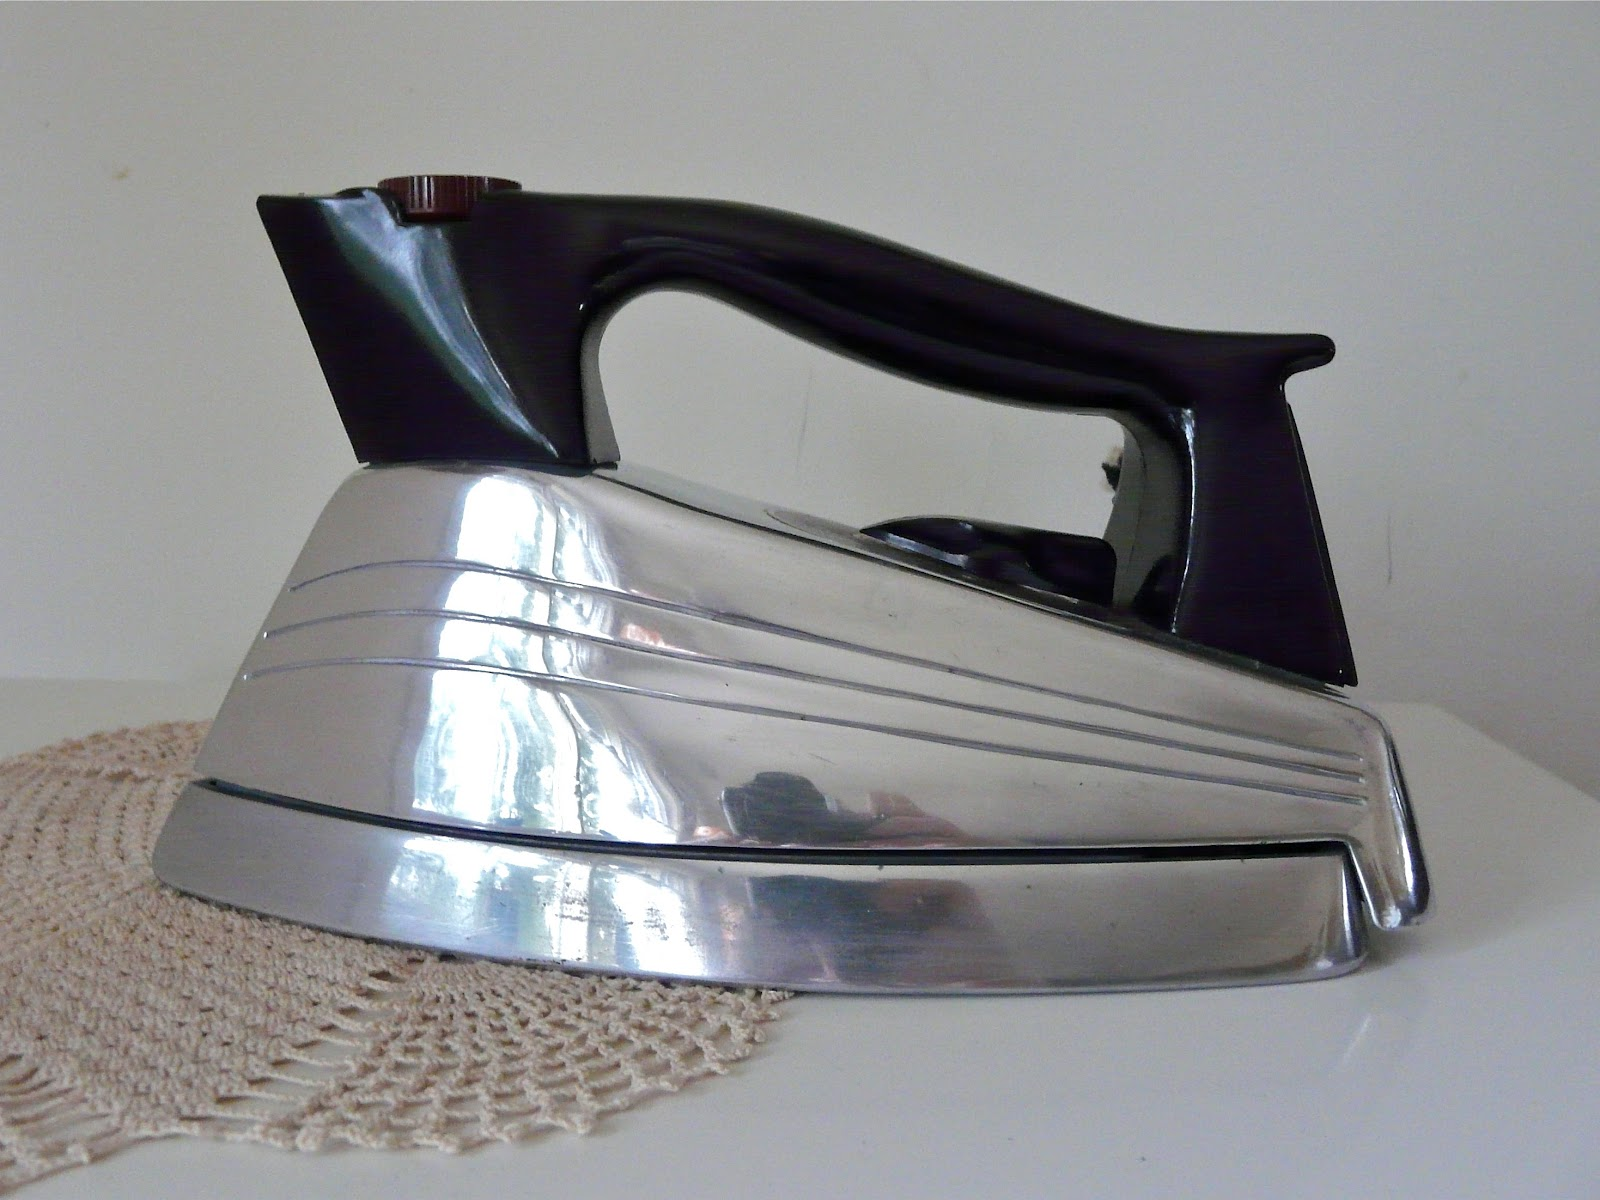 Antique Electric Irons ~ Monitor steam iron vintage electric irons